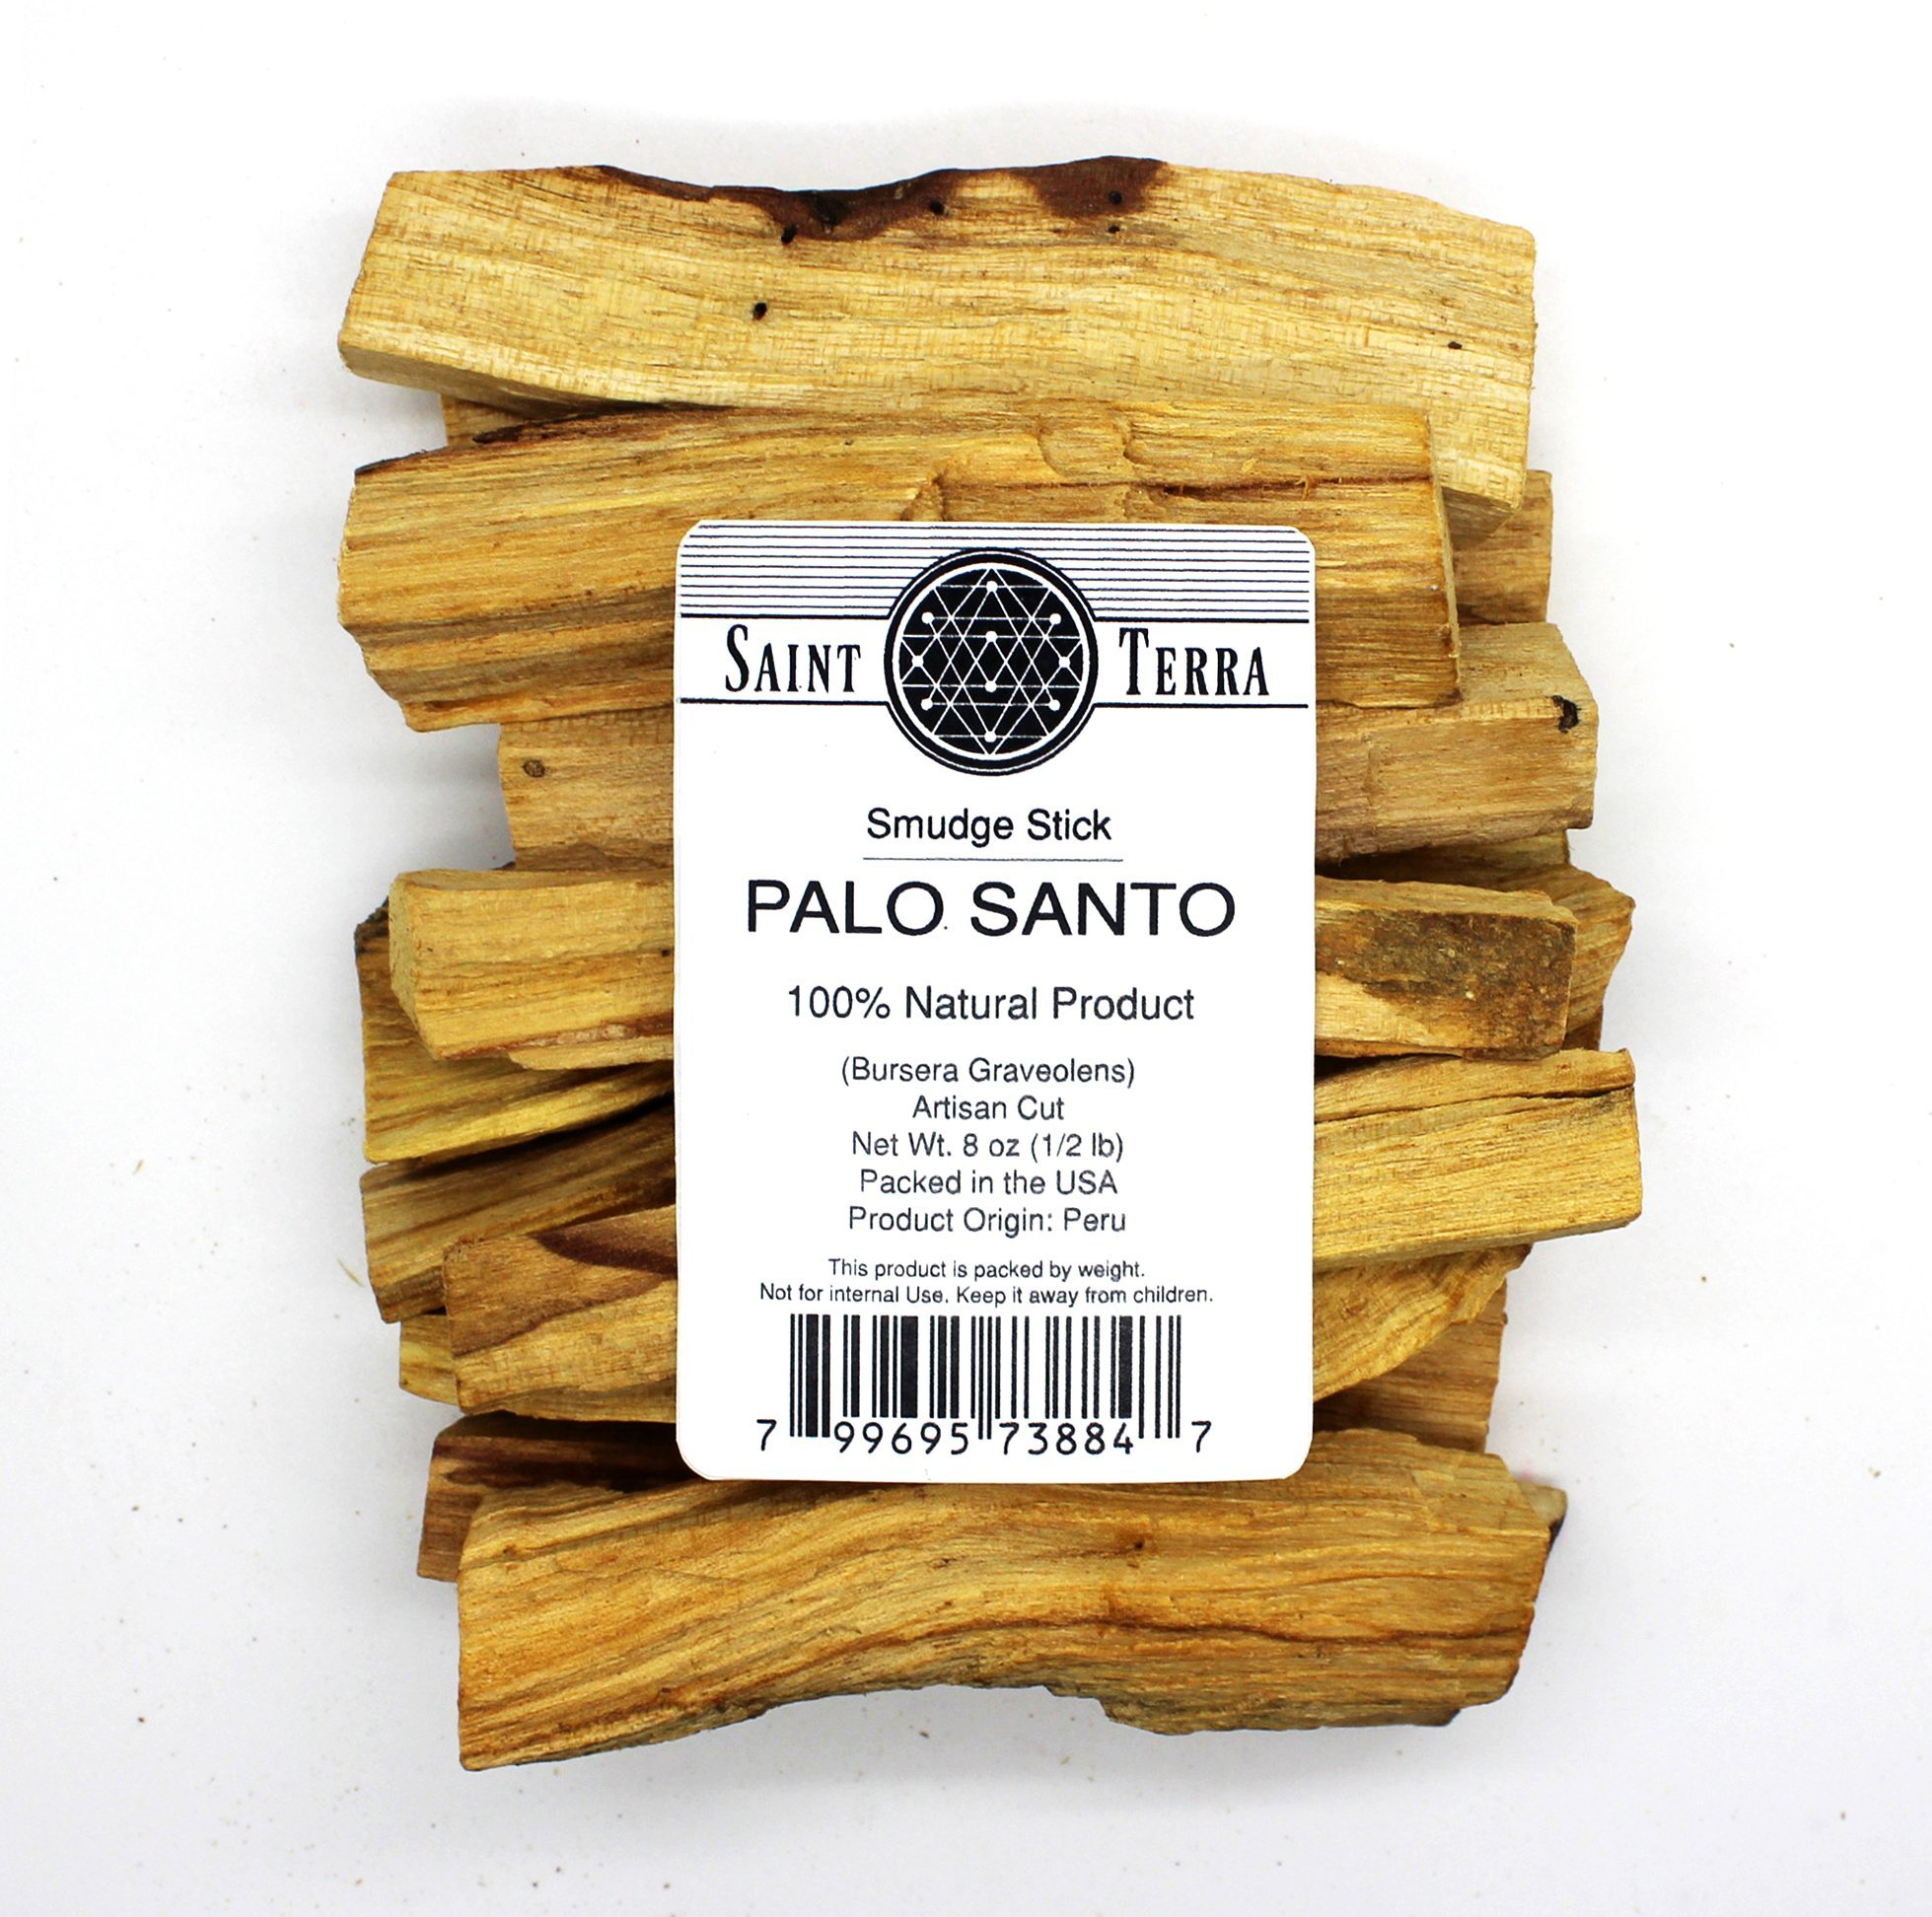 Saint Terra - Premium Palo Santo (Holy Wood) 8 oz Pack Artisan Cut Smudge Stick - 100% Natural by Saint Terra (Image #1)